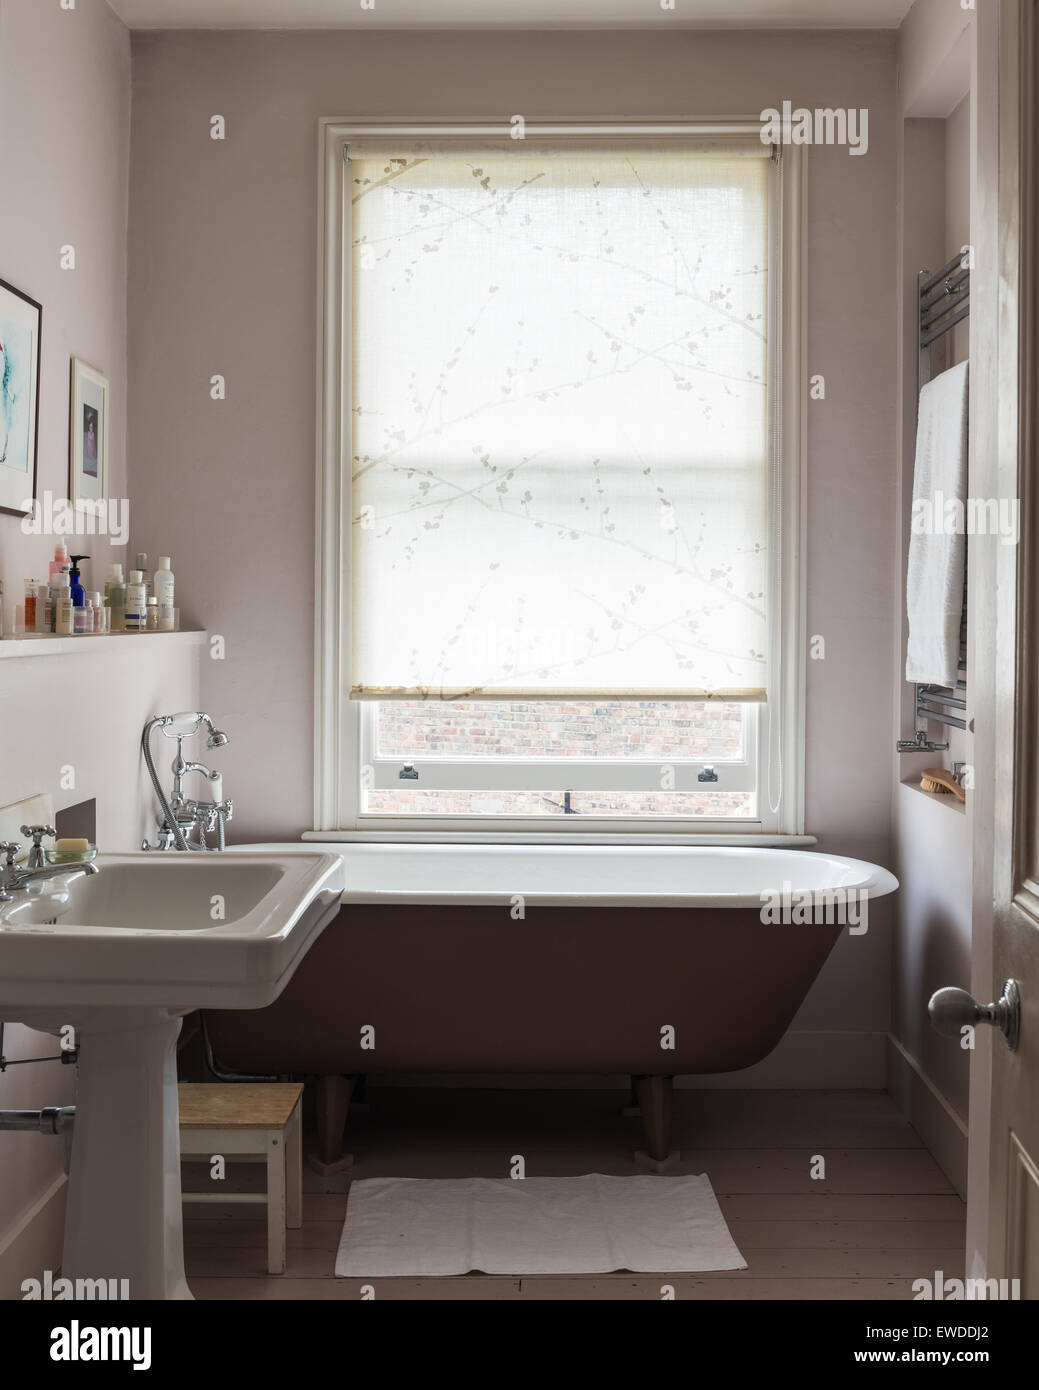 Free standing roll top bath in bathroom with wooden flooring and ...